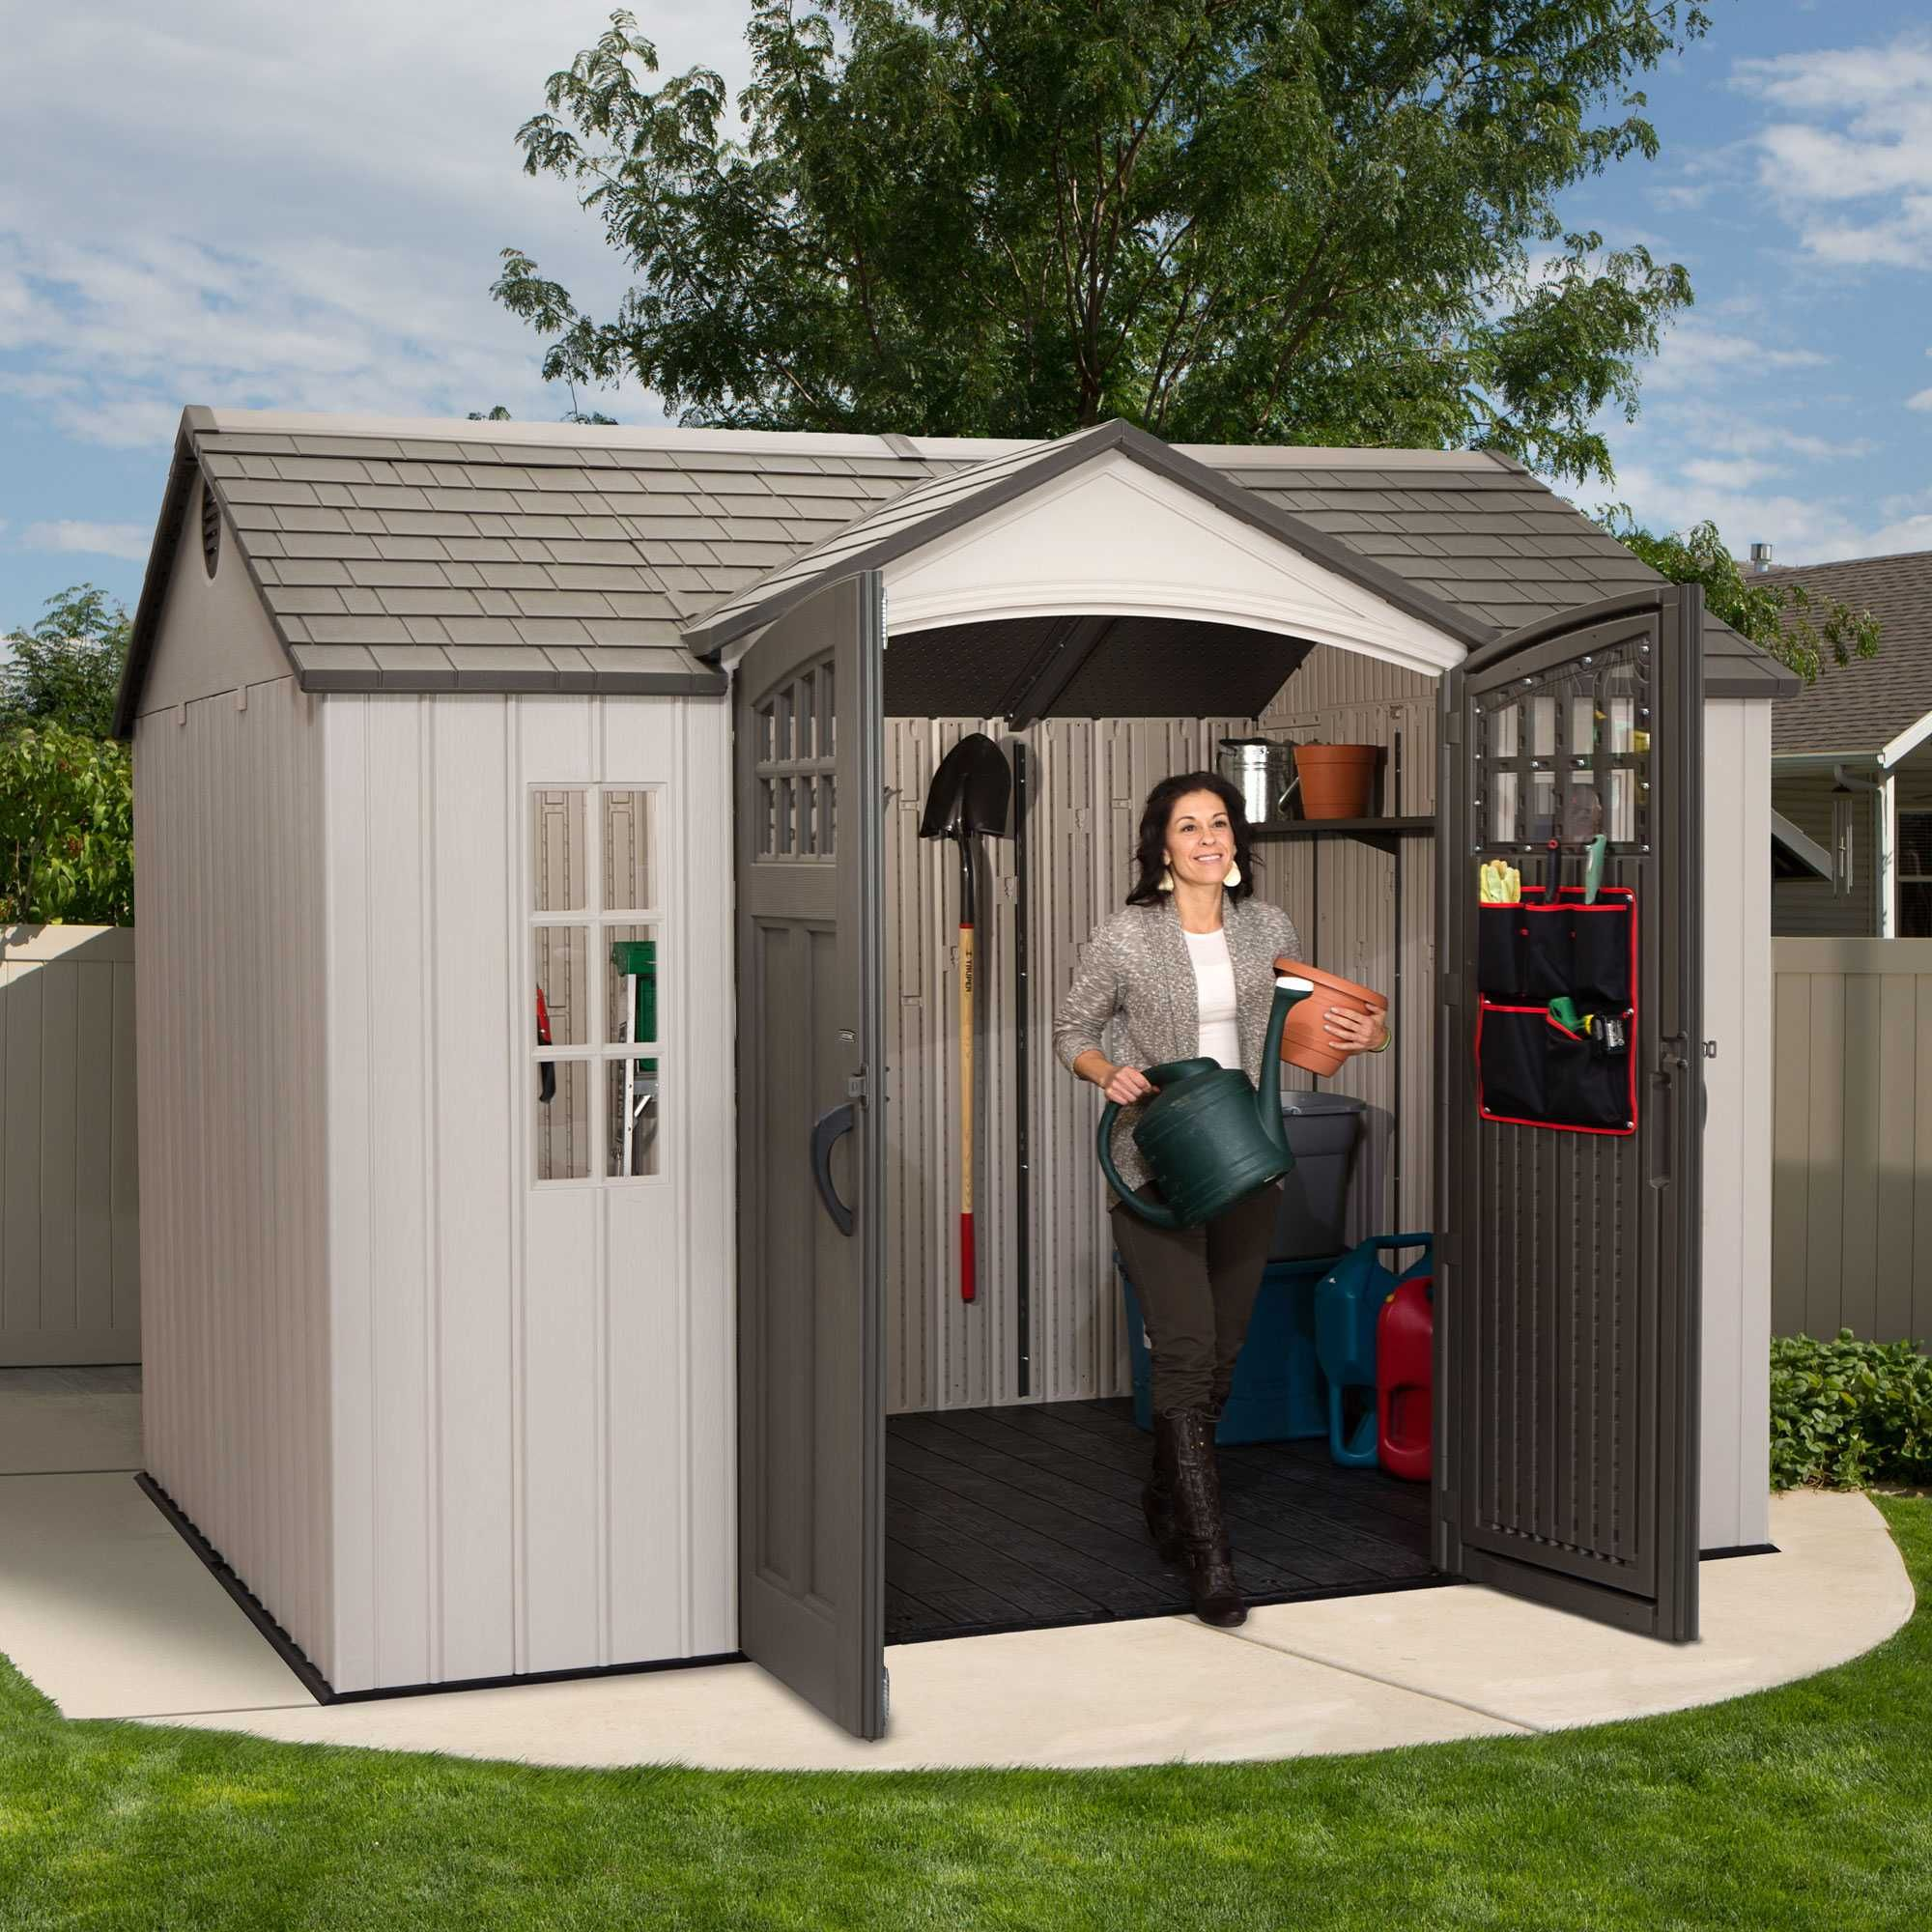 60118 71 25 Square Ft 494 5 Cubic Ft The Lifetime 10 X 8 Garden Building Features Vertical Siding New Sli Outdoor Storage Sheds Backyard Sheds Shed